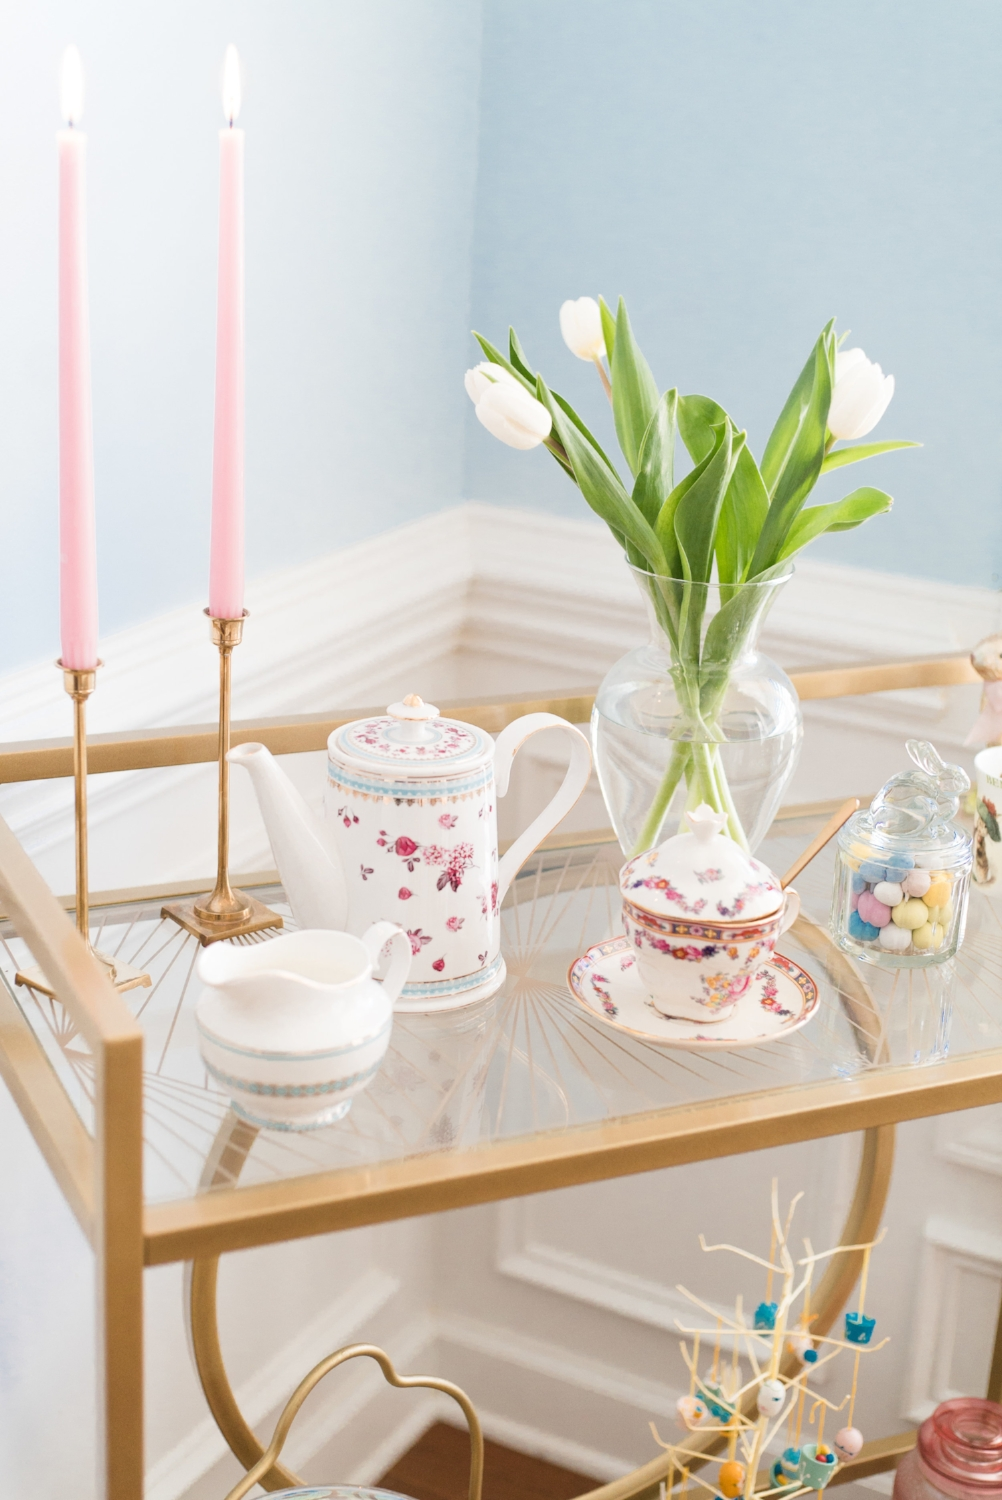 I mix and matched some pieces for the tea cart. Tulips are also one of my favorite spring flowers!